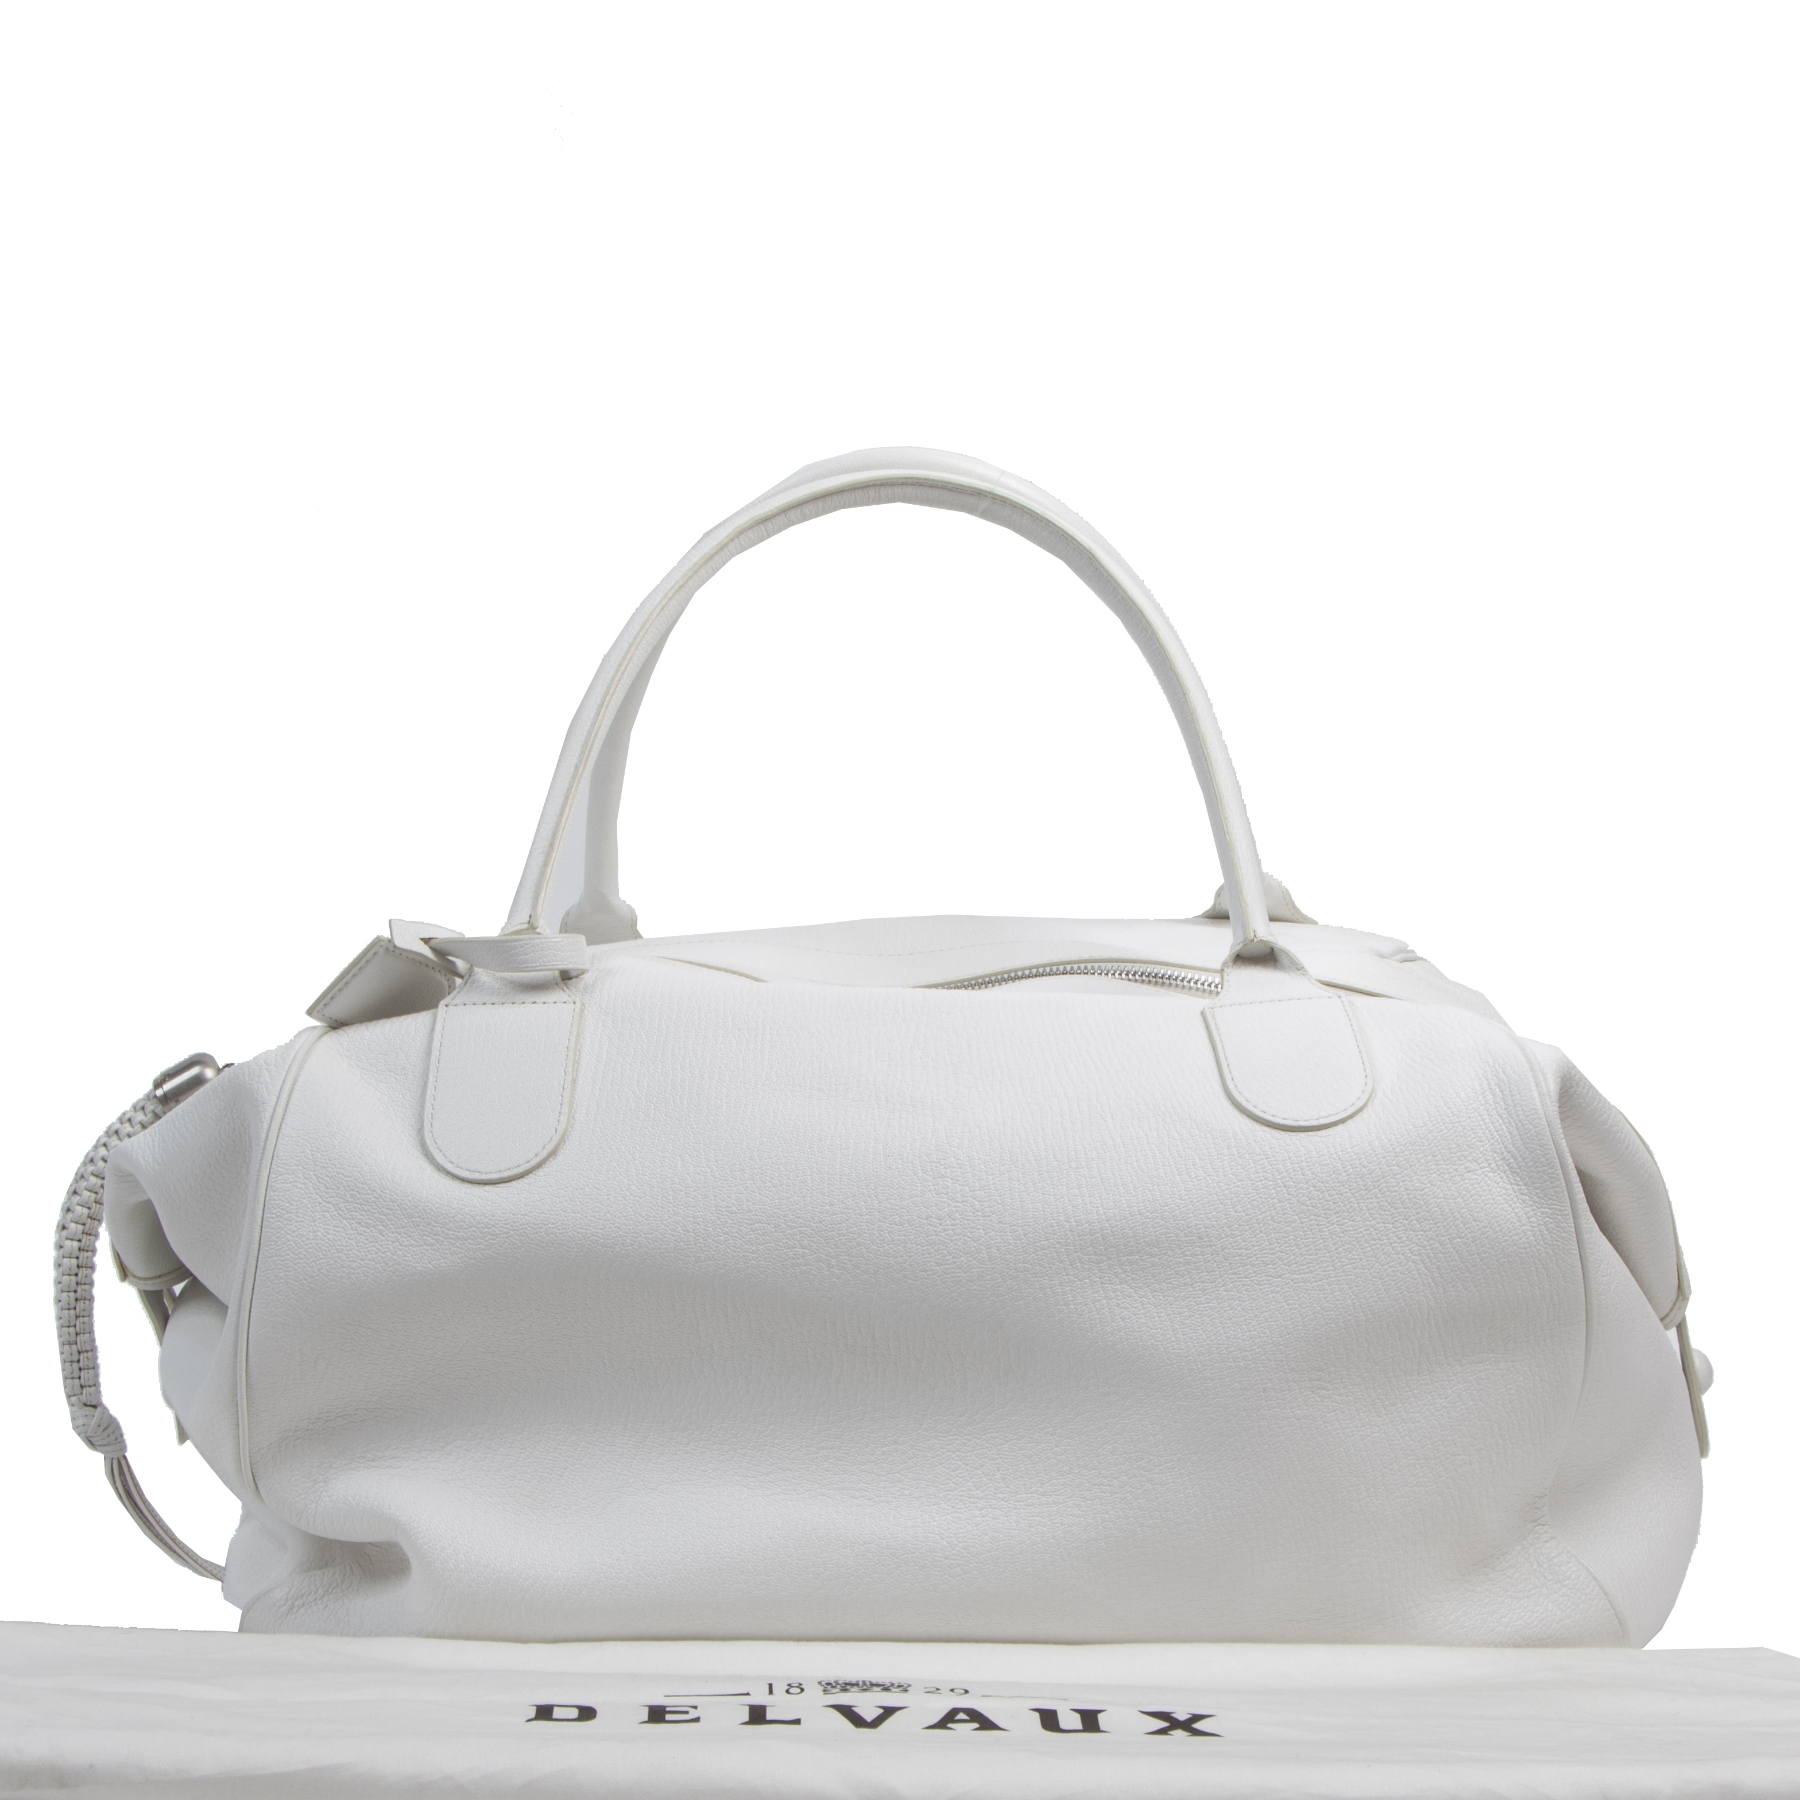 Authentic second-hand vintage Delvaux Chèvre Glacèe Emma GM buy online webshop LabelLOV